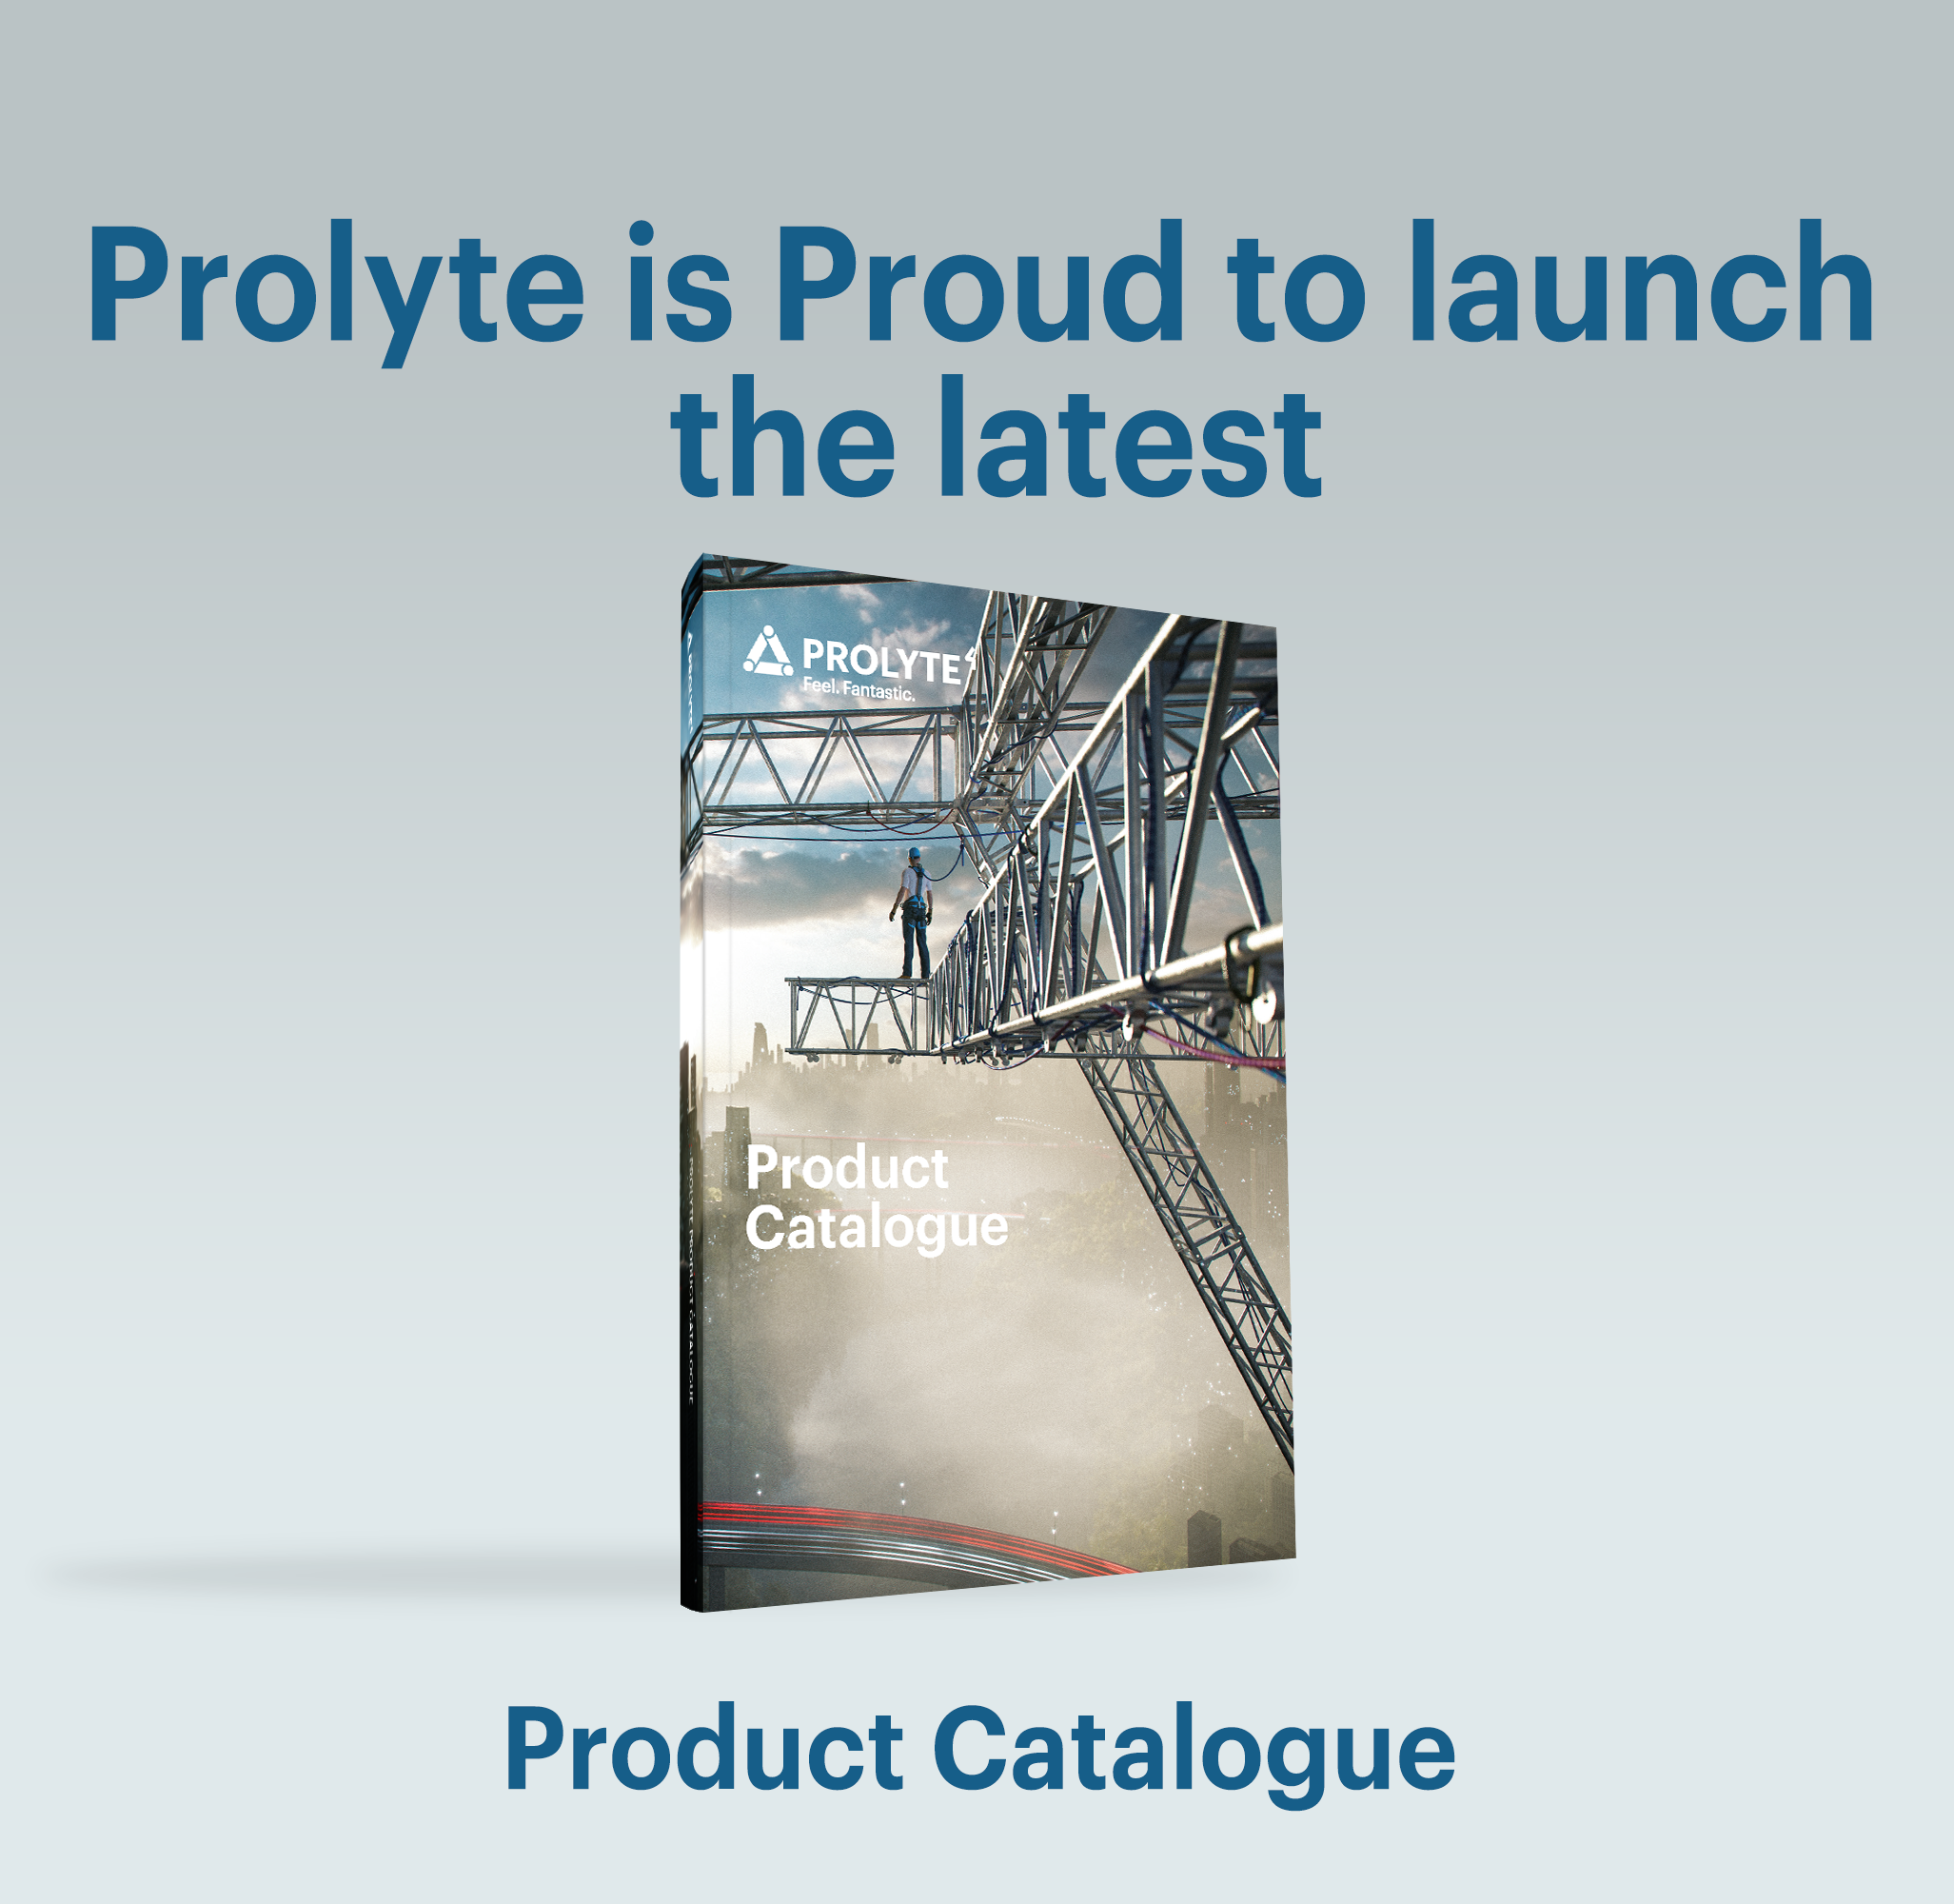 Prolyte's Latest Product Catalogue is here!